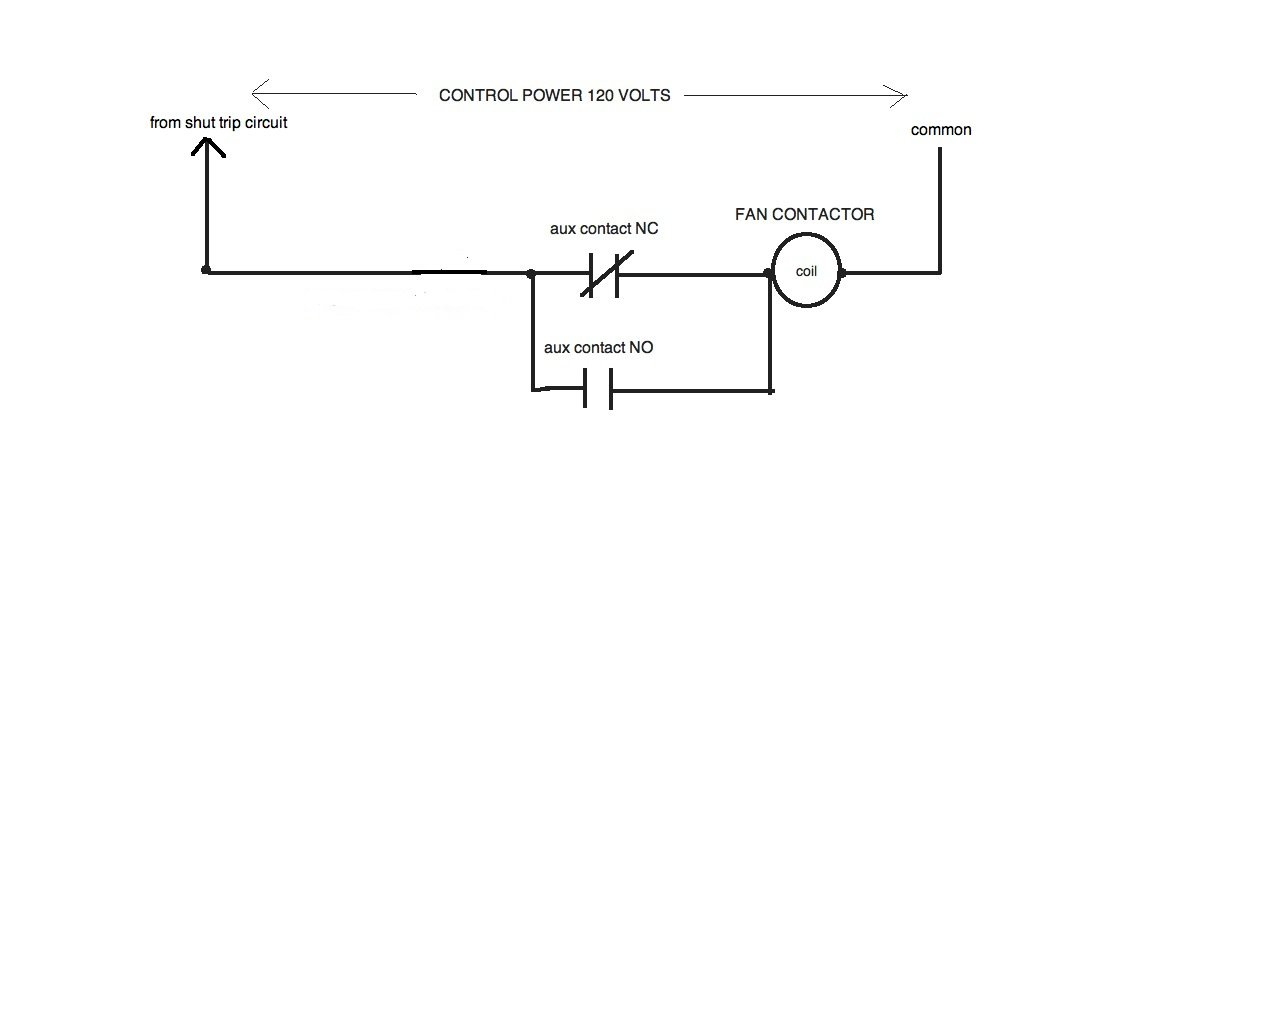 Pict L  Holder Outlets Vector Stenvils Library as well Shunt Trip in addition Pull The Plug further Split Wired Duplex Receptacle together with Harbor Breeze Ceiling Fan Wiring. on pull switch electrical symbol